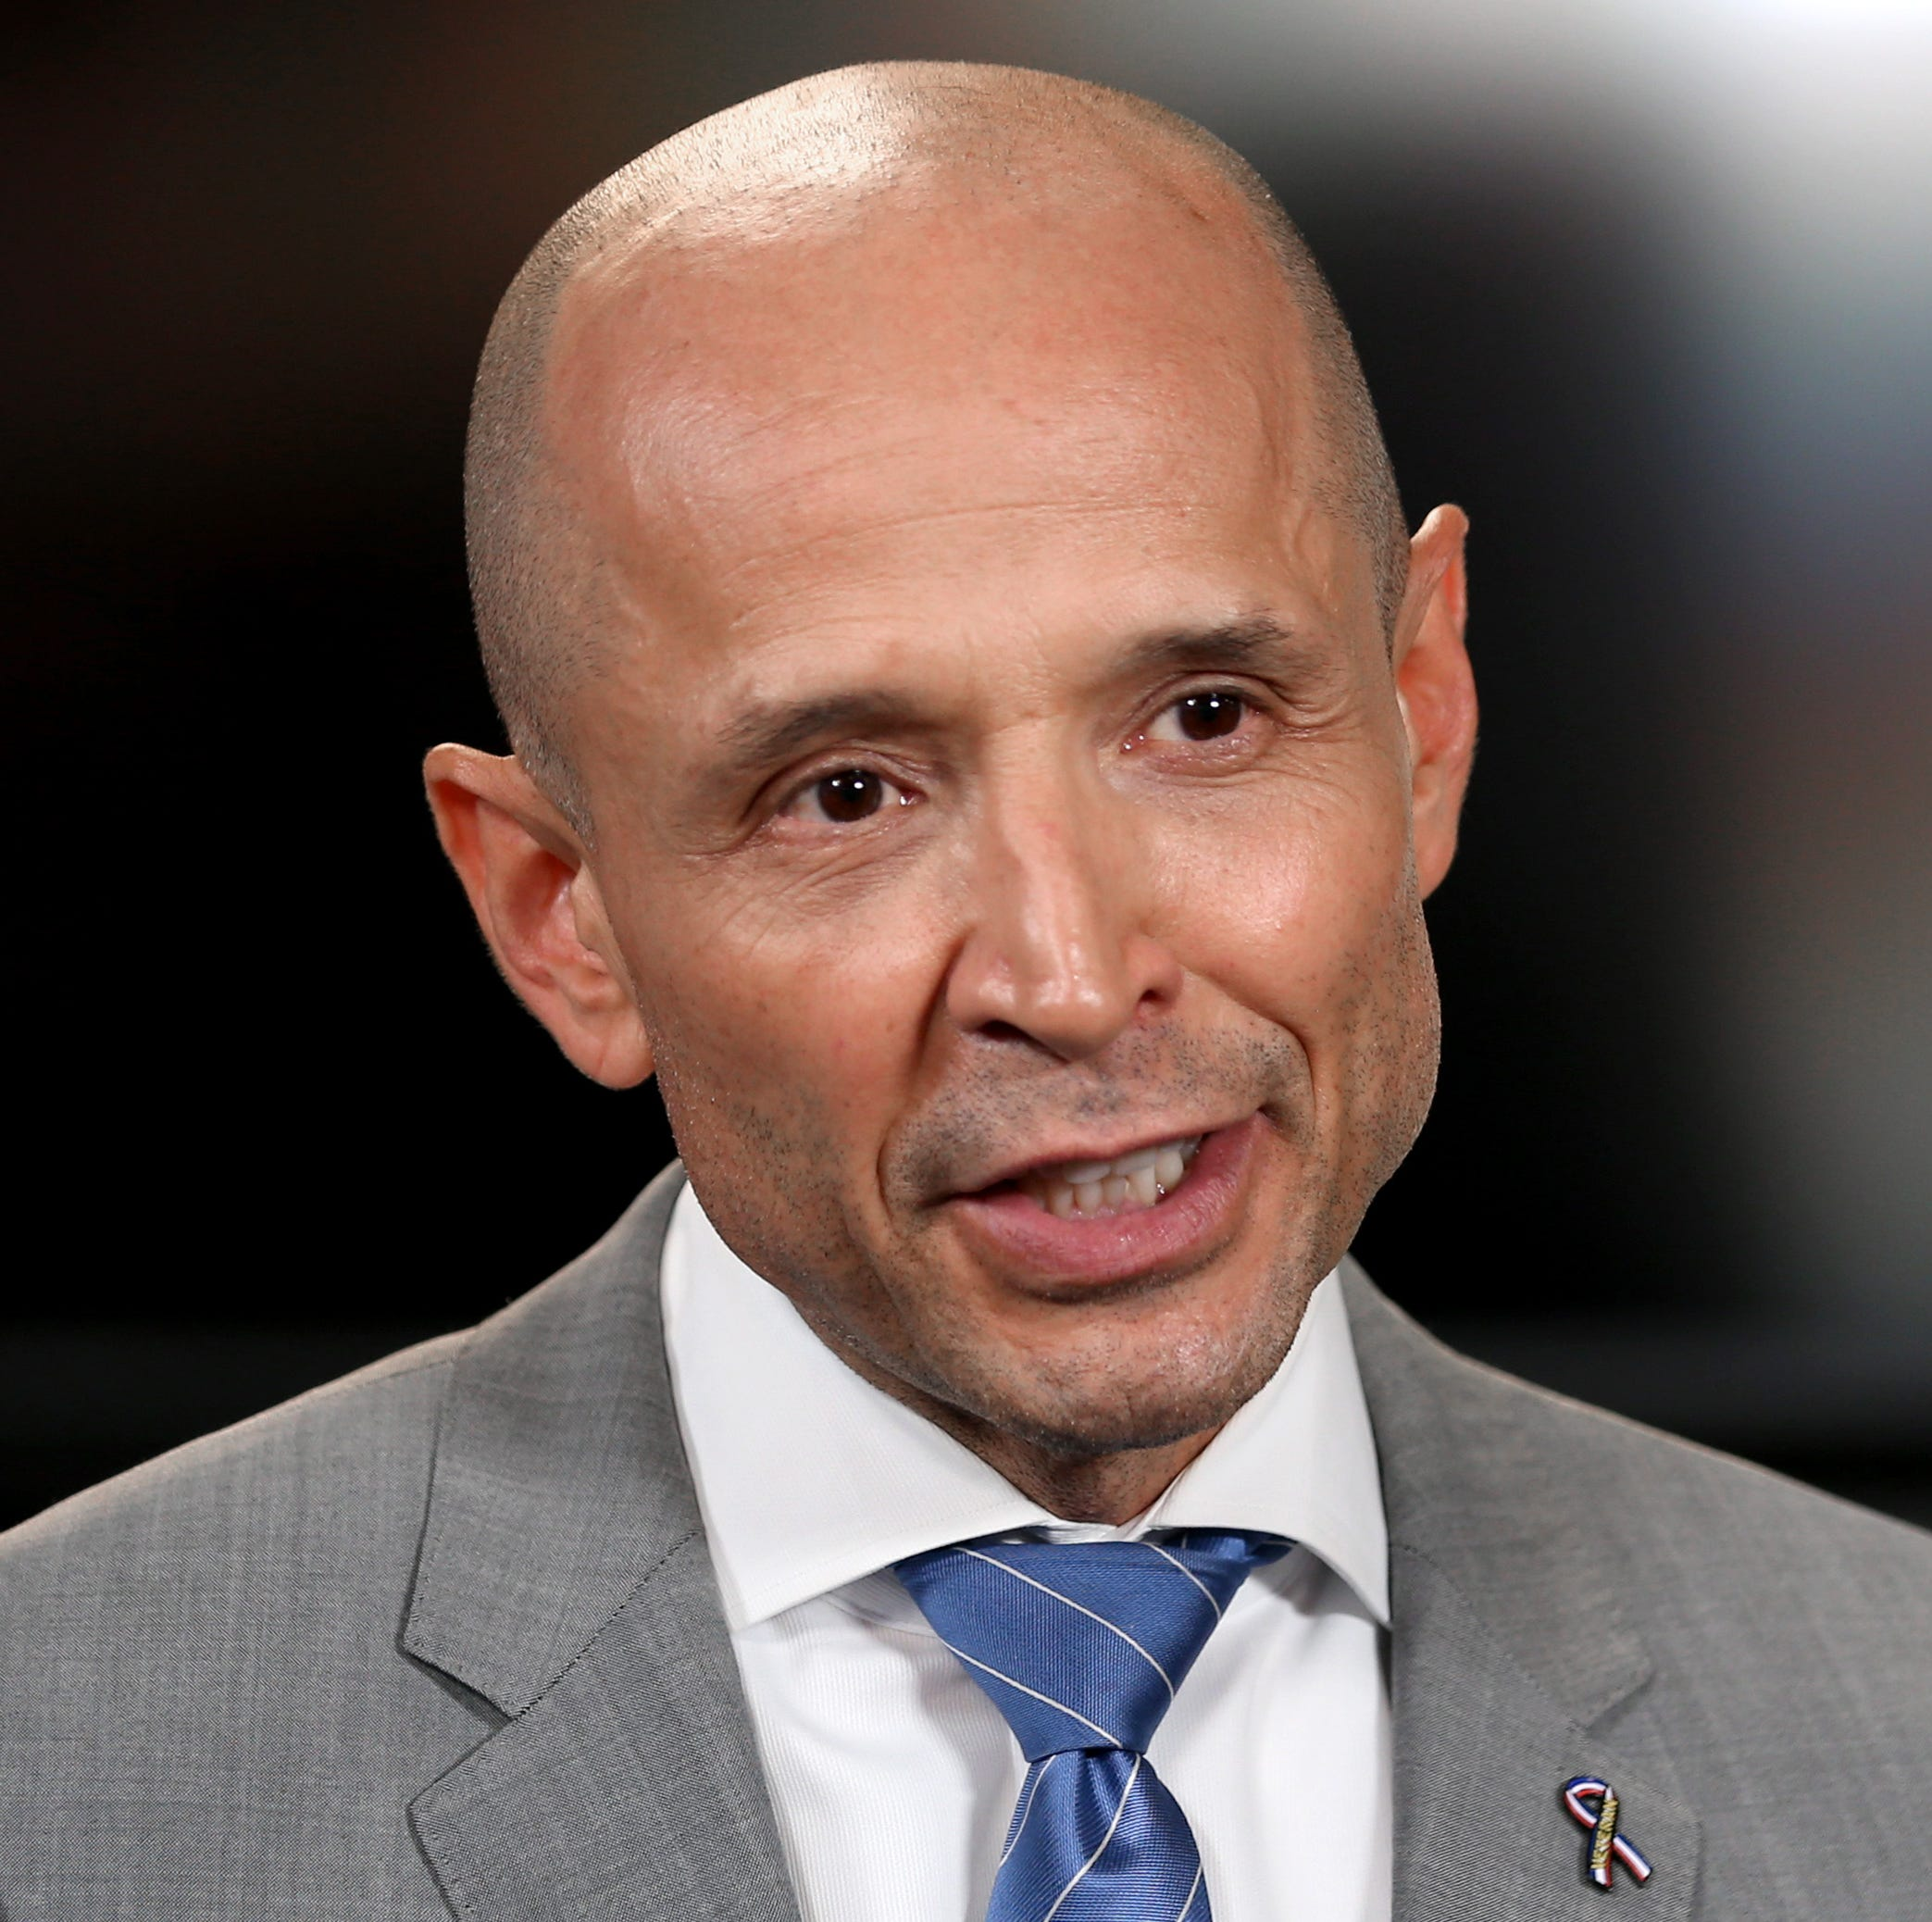 David Garcia releases poll that shows he's losing ... but 'surging'?